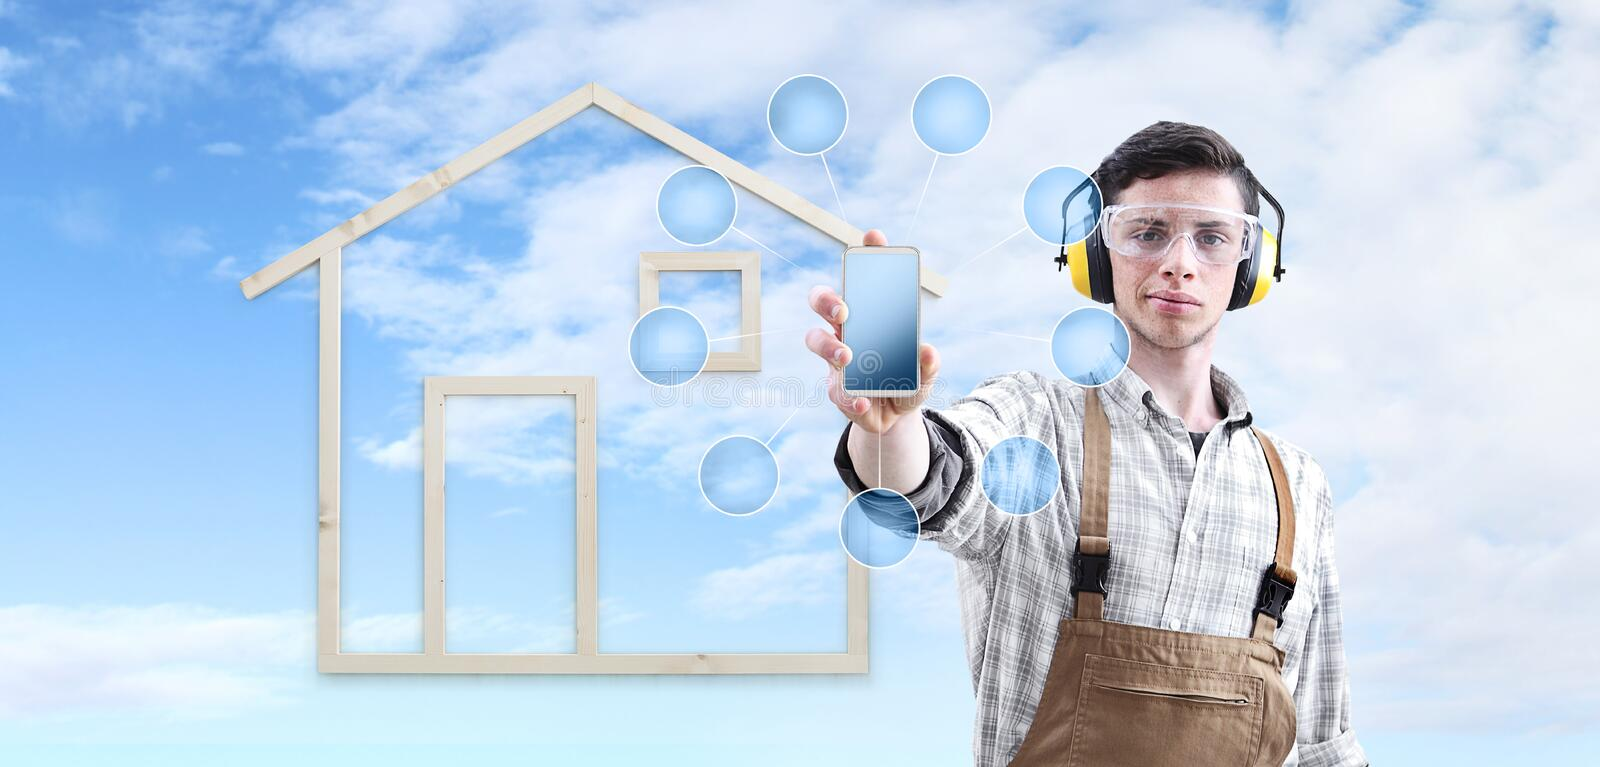 House construction renovation concept handyman carpenter man show the mobile phone with empty symbol icons, isolated royalty free stock photography